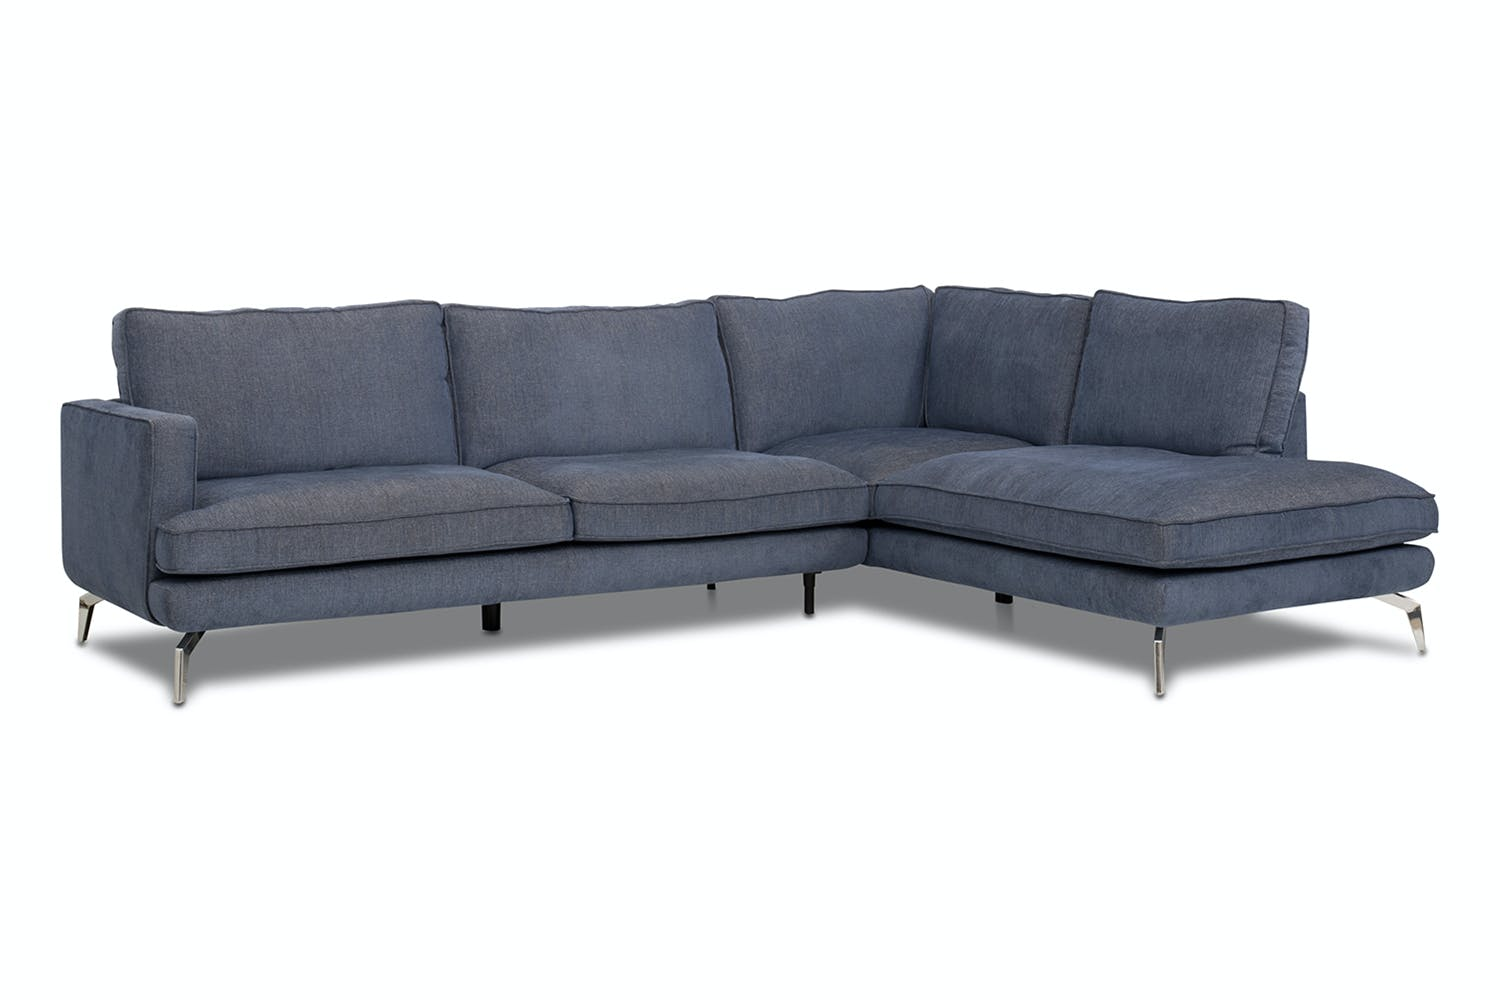 Cool Sofas Irelands Sofa Superstore Ireland Caraccident5 Cool Chair Designs And Ideas Caraccident5Info